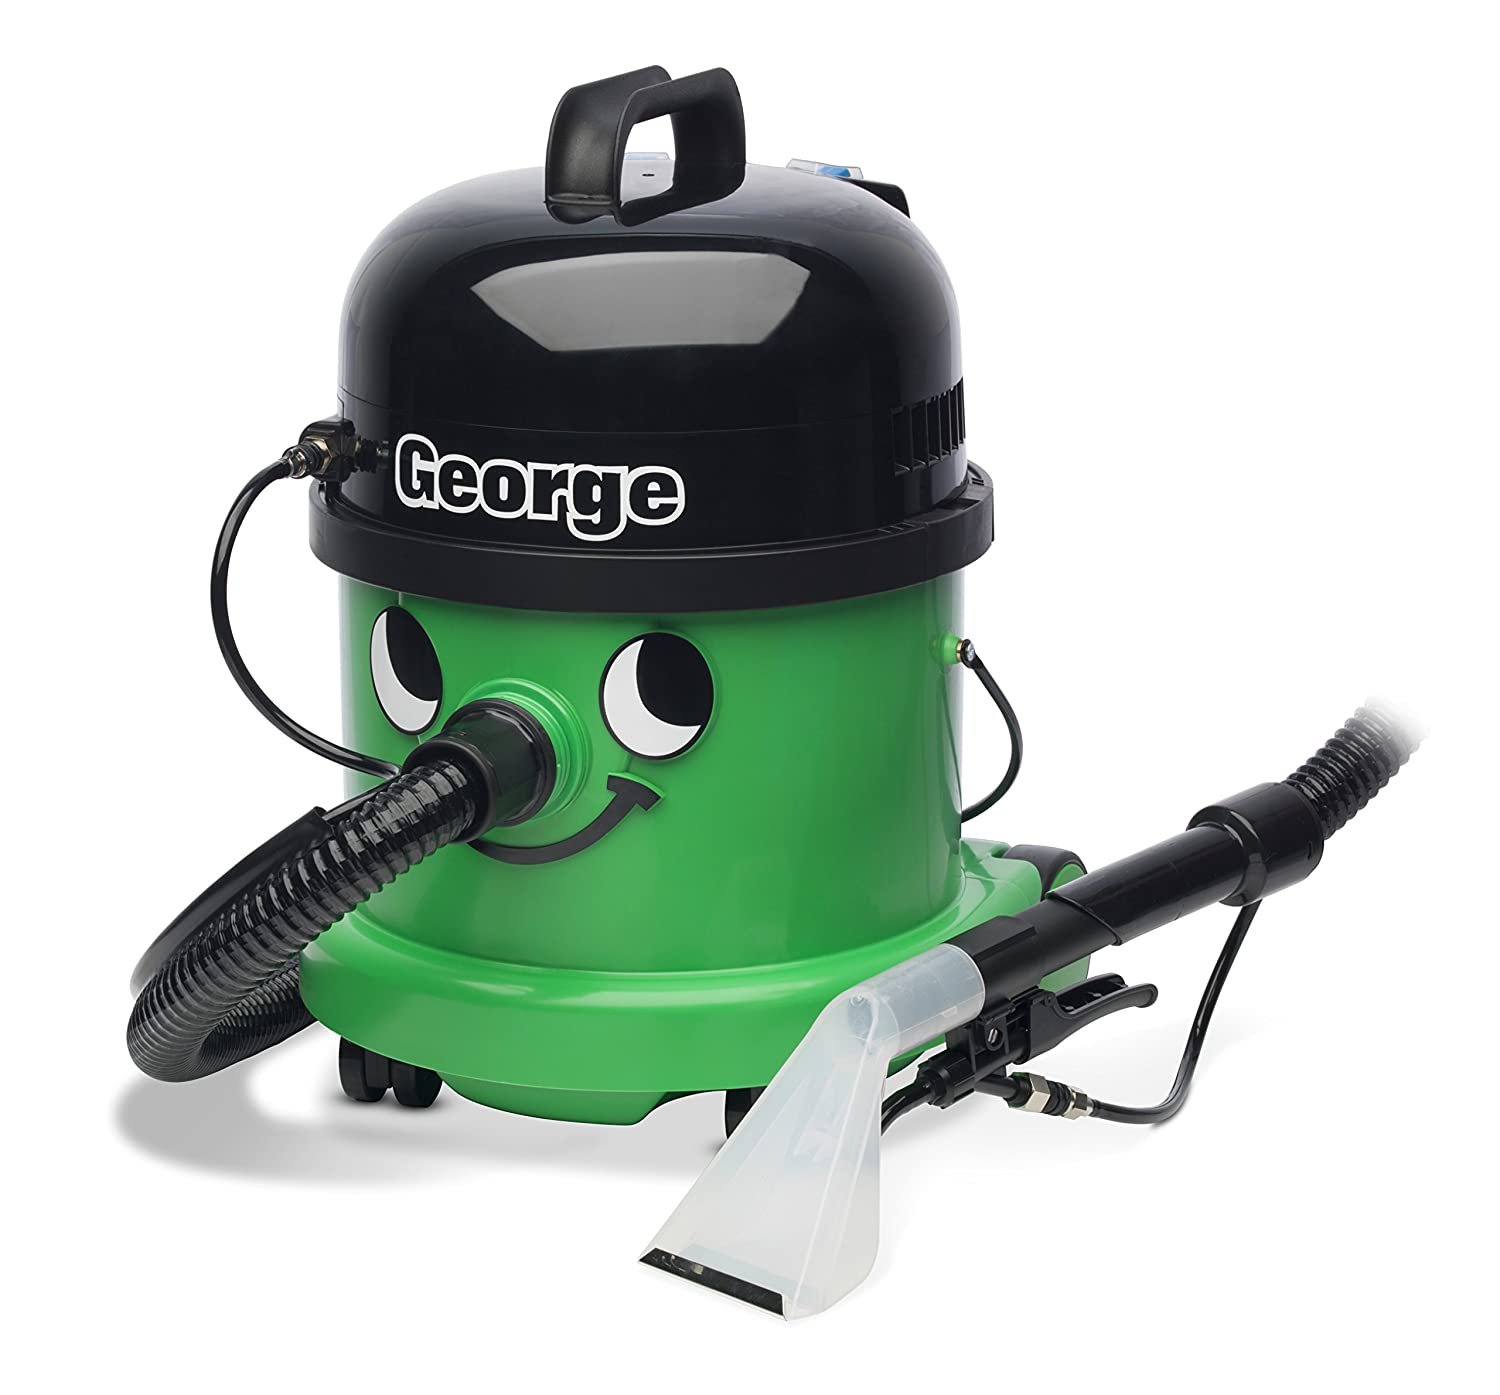 Henry George / GVE 370-2 / 825714 Wet and Dry Vacuum, 15 Litre, 1060 Watt,  Green: Amazon.co.uk: Business, Industry & Science